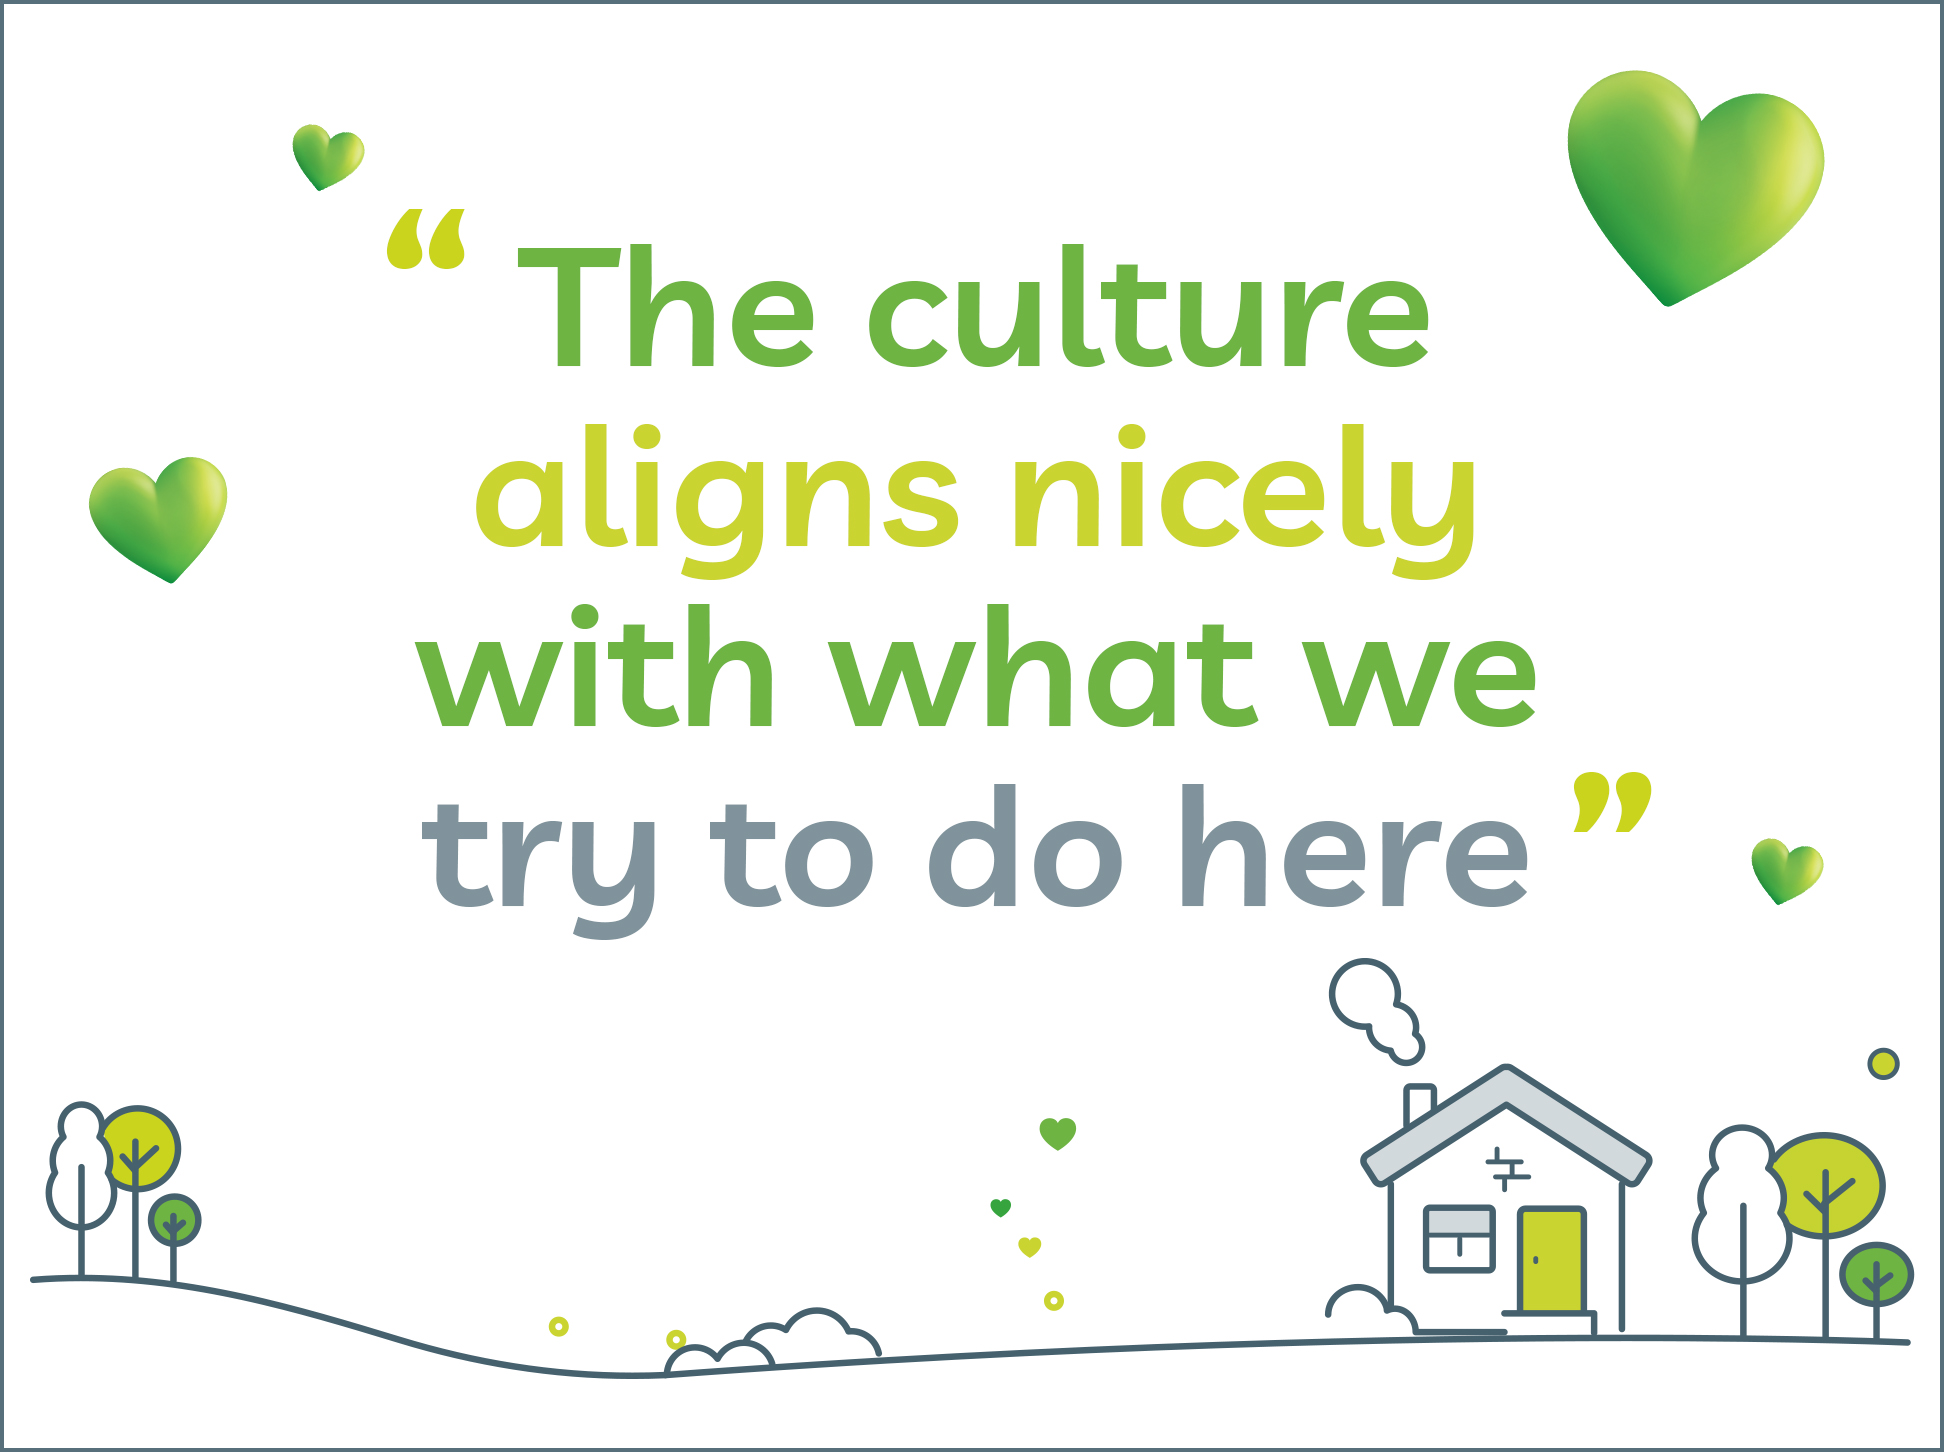 Image of LV= GI quote 'The culture aligns nicely with what we try to do here'